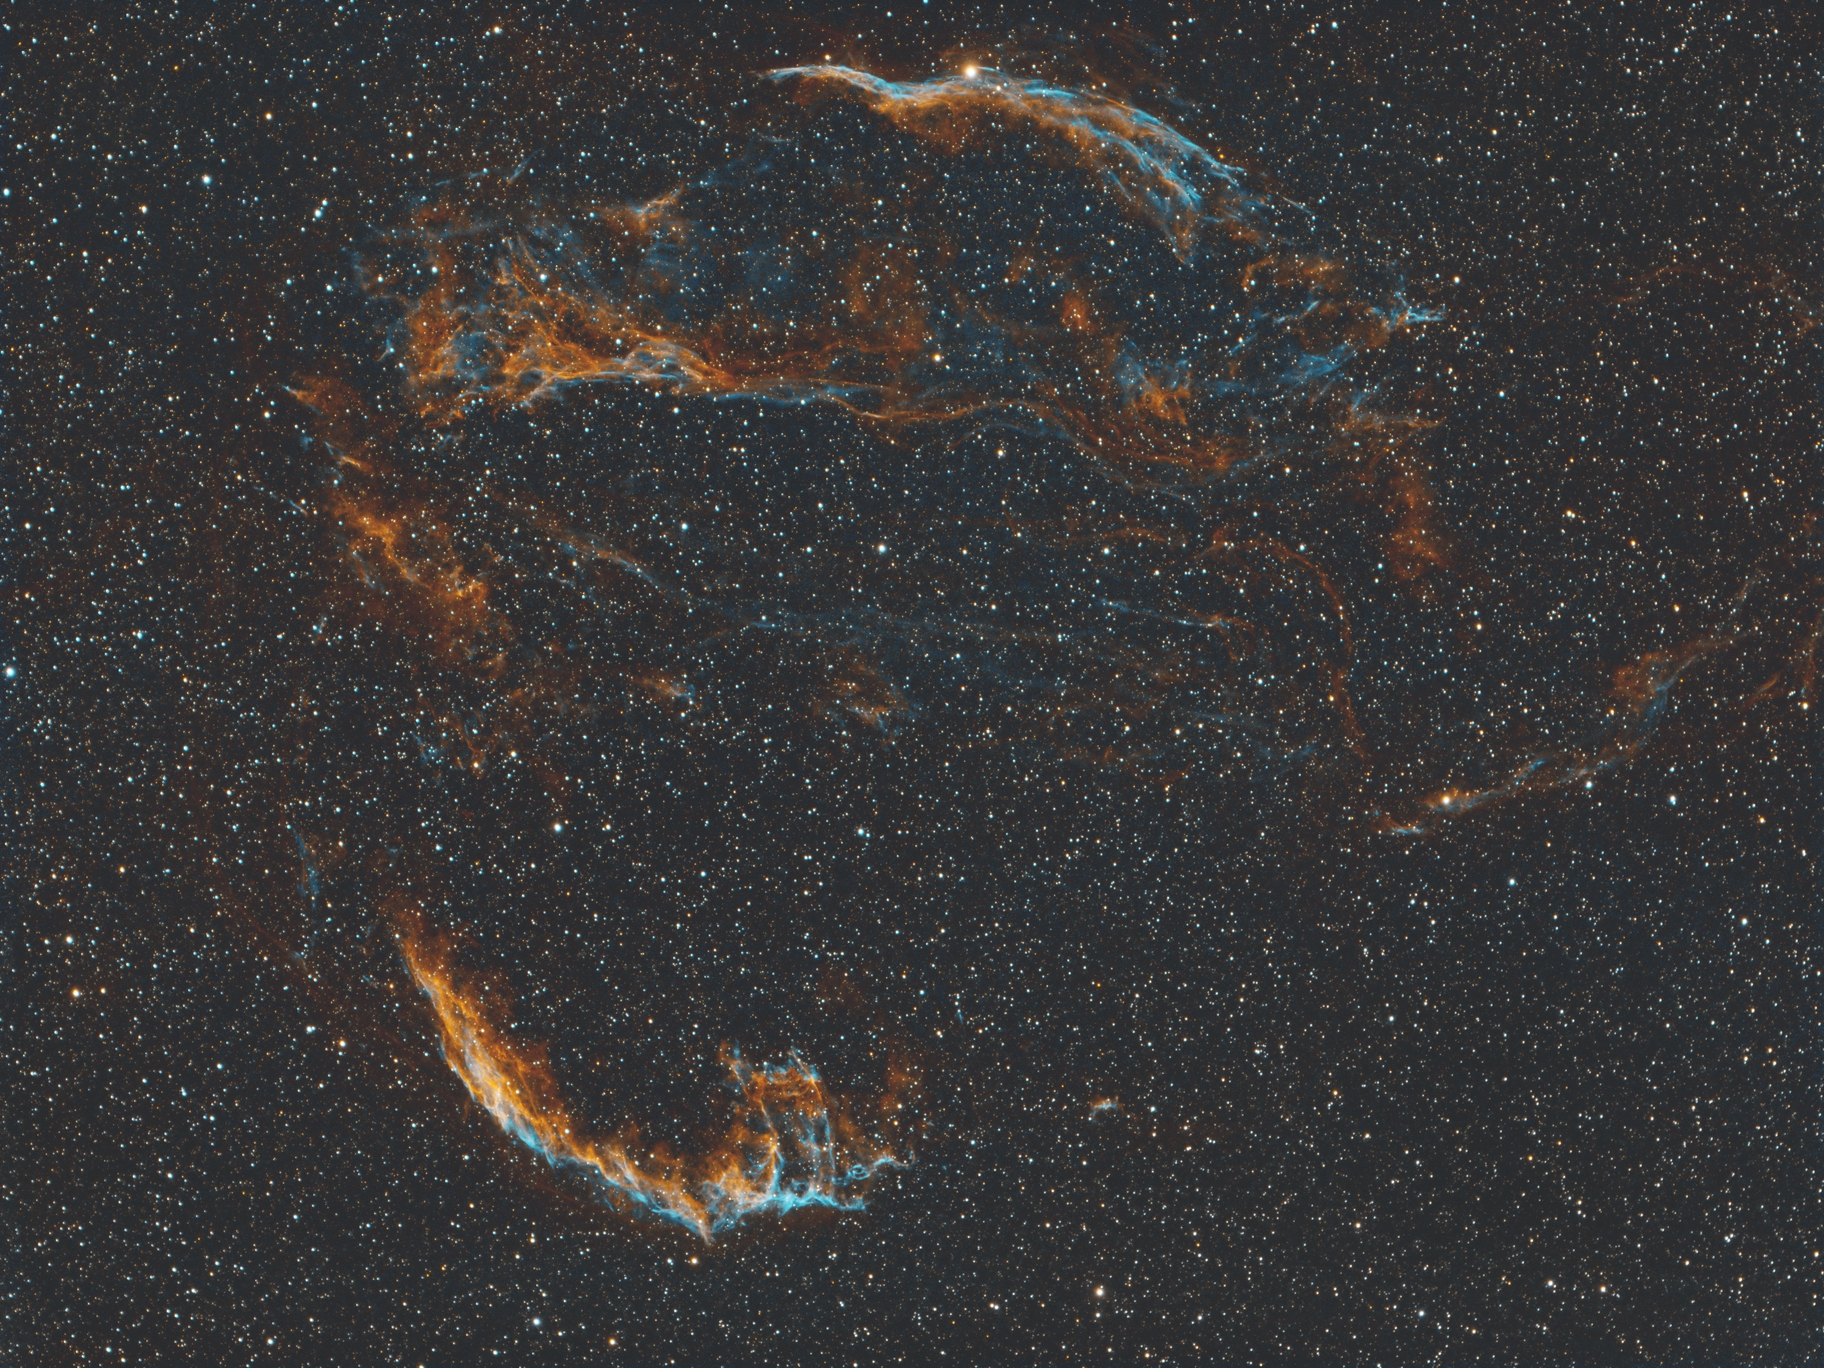 The Veil Nebula, which is a supernova remnant. Its circular shape is the expanding gas from a star's explosion. Pretty cool. This was a quick shot, just three hours each of Hydrogen Alpha and Oxygen III filters.